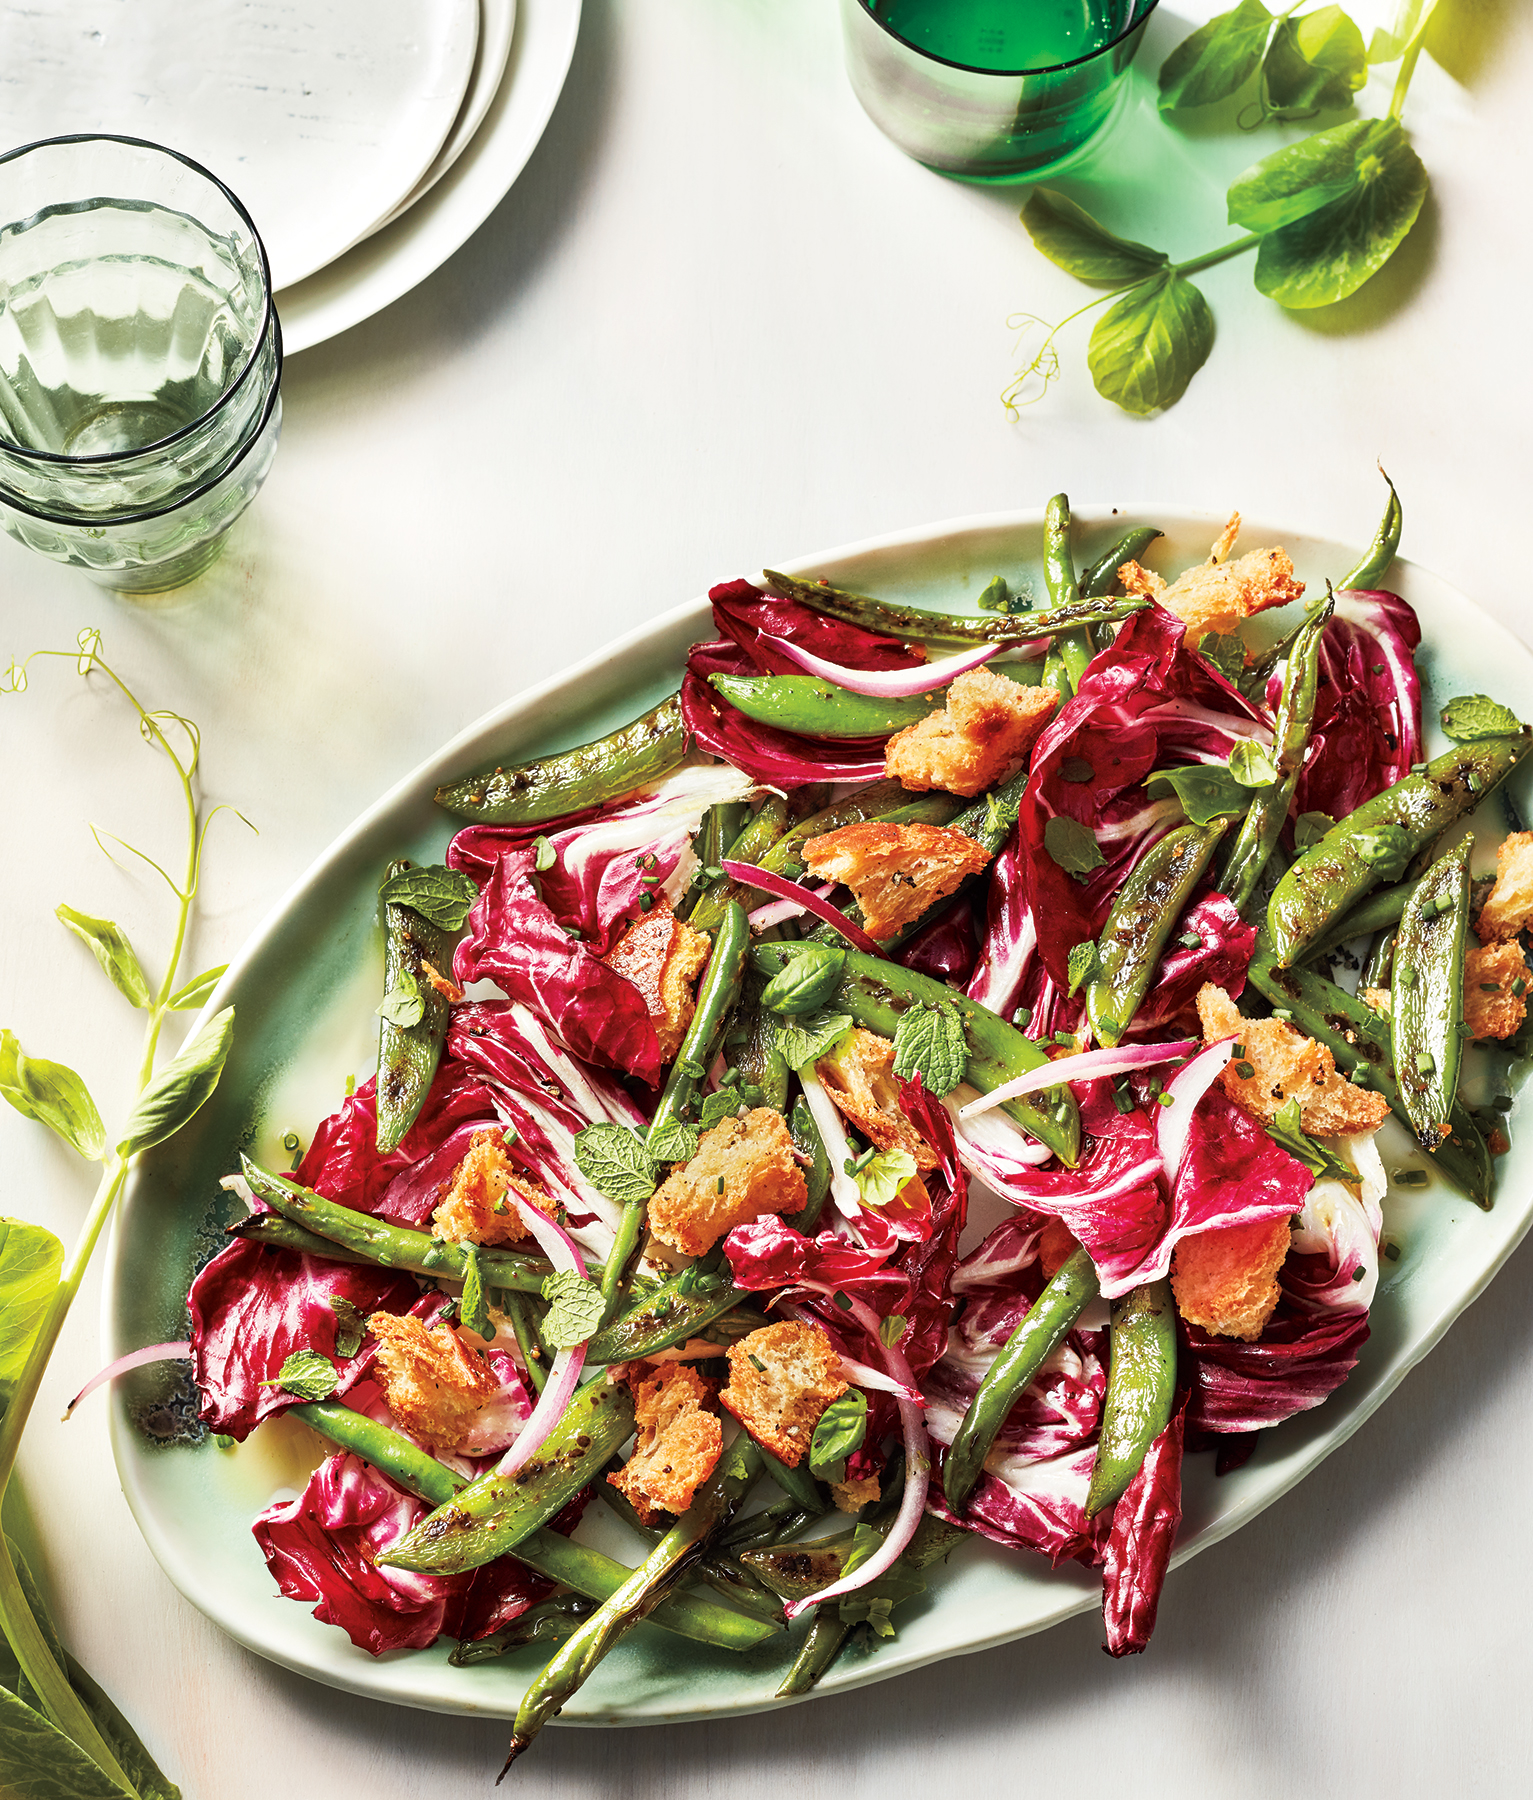 Radicchio Panzanella With Charred Snap Peas and Beans (0518FOO)